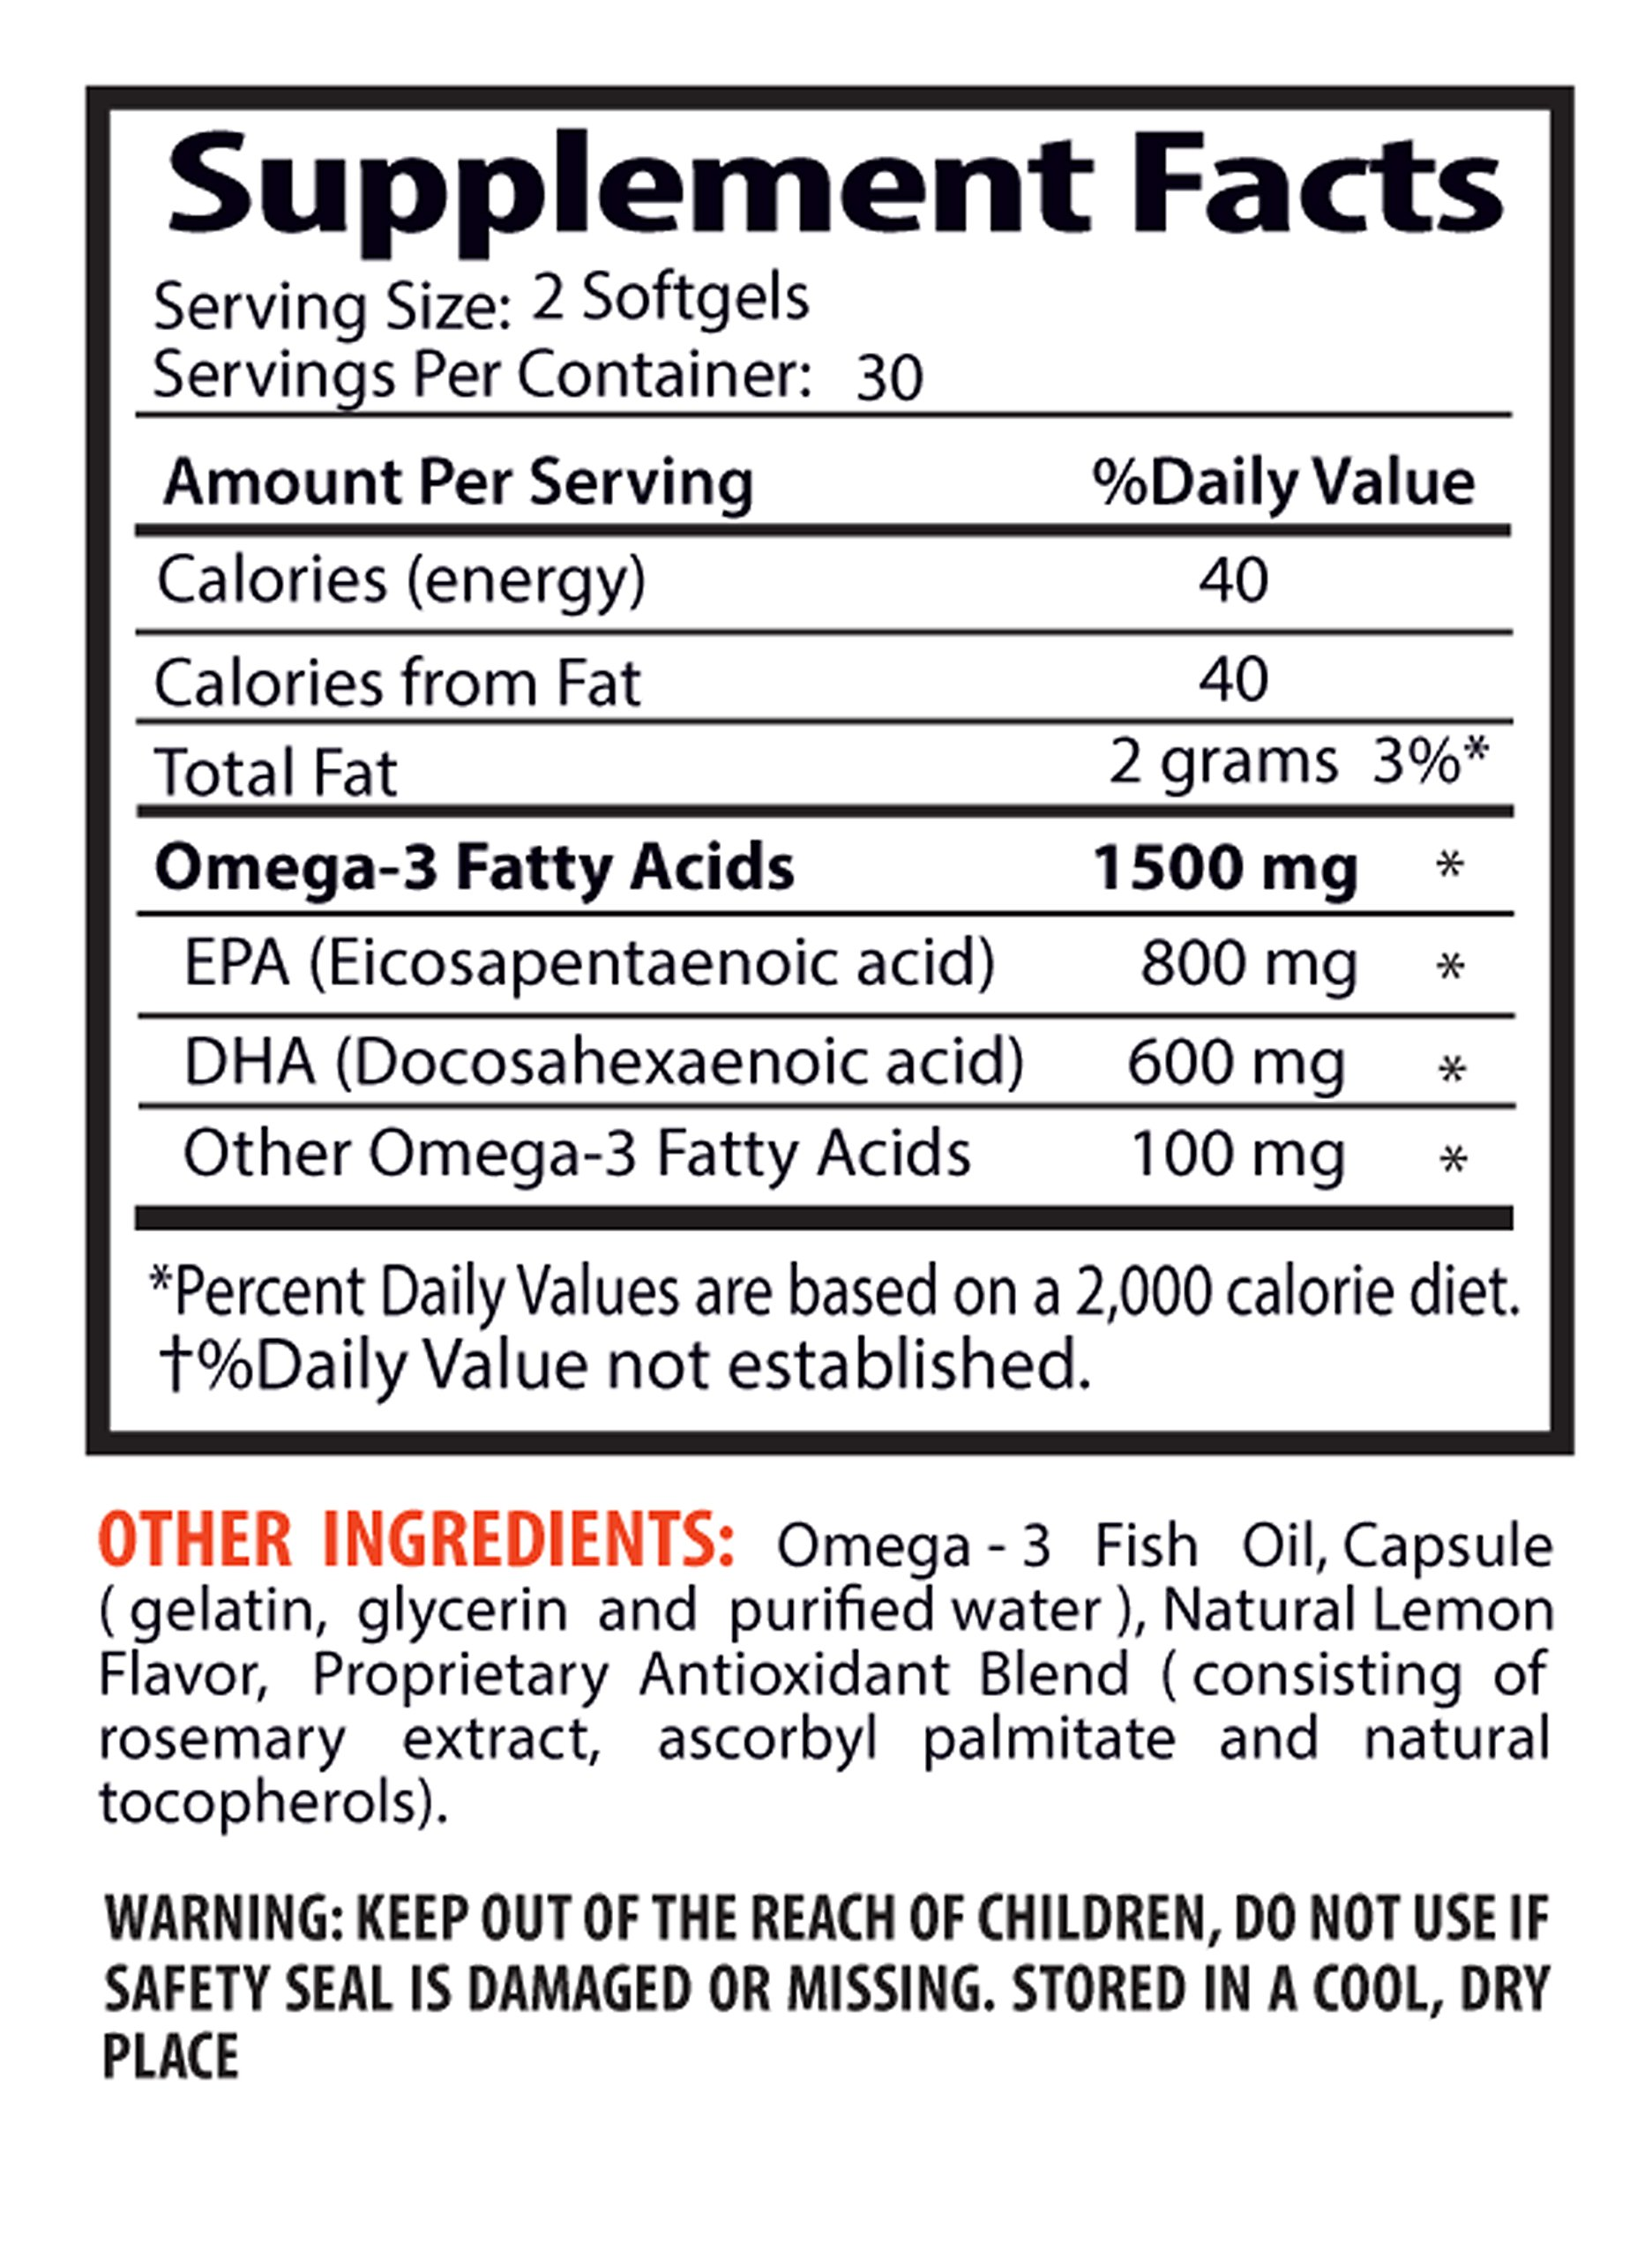 Immune support booster - OMEGA 8060 FATTY ACIDS 1500mg (Highly Concentrated Fish Oil - Pharmaceutical Grade) - Omega 3 high epa - 3 Bottles 180 Softgels by Sport Supplements (Image #2)